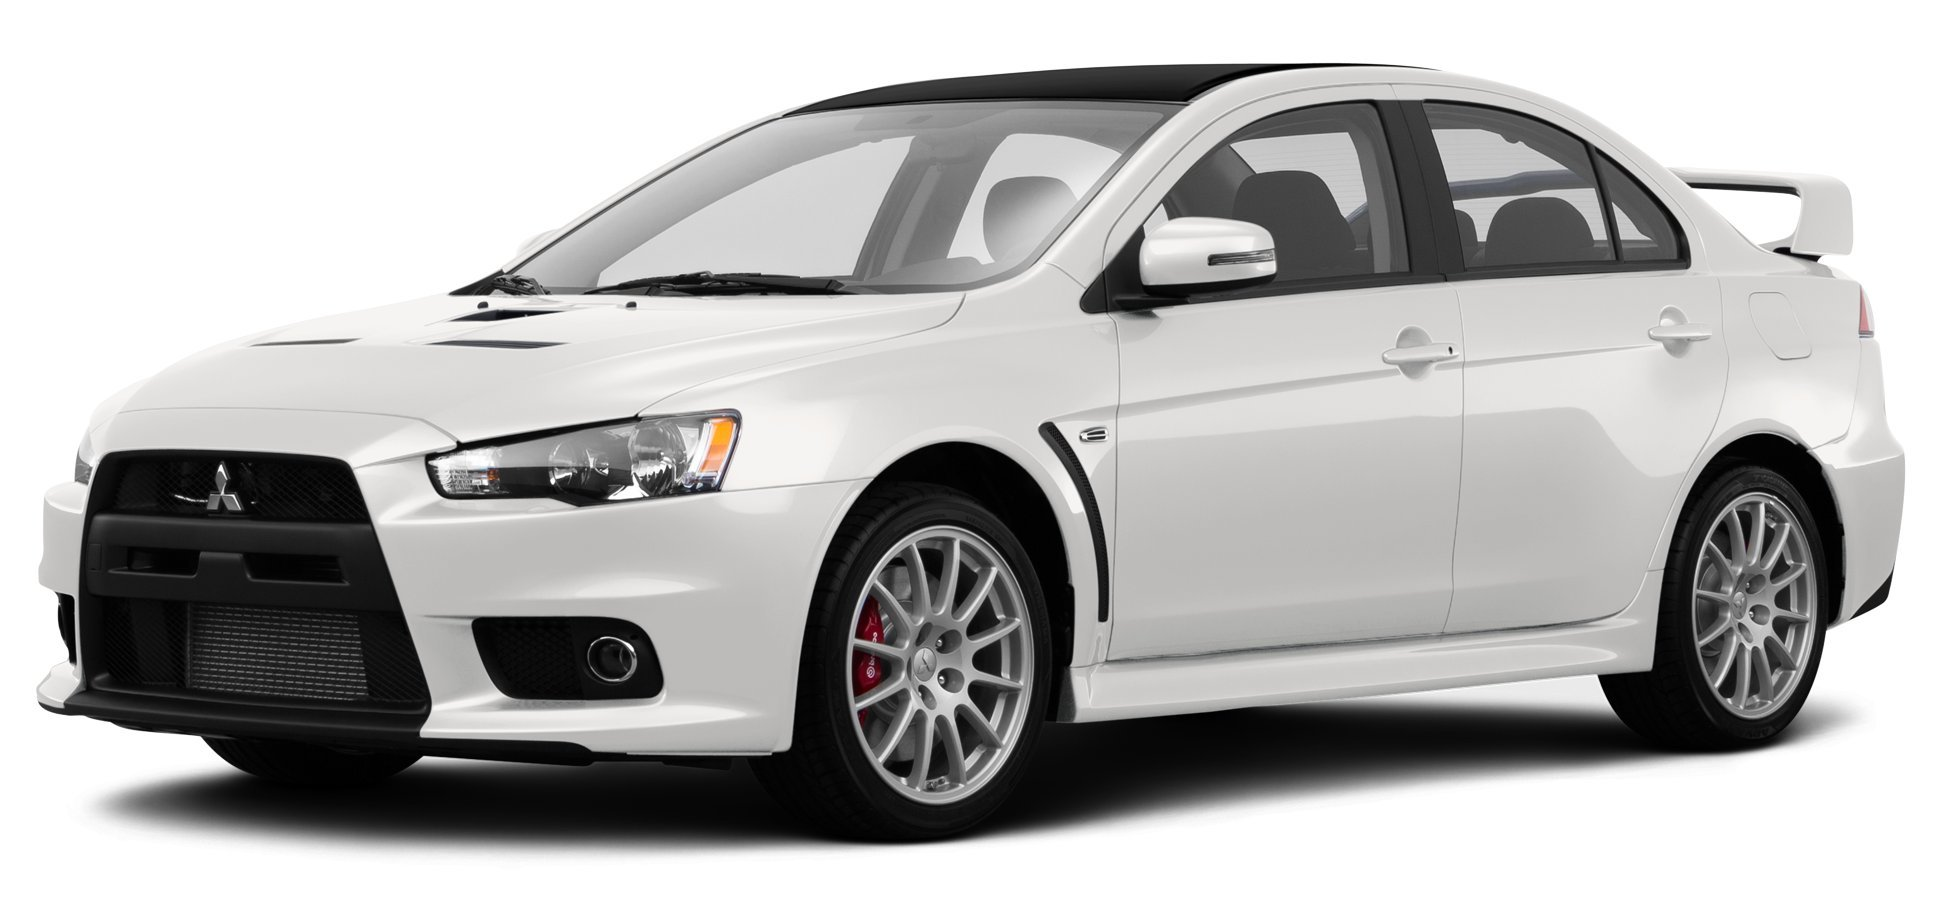 2015 mitsubishi lancer reviews images and. Black Bedroom Furniture Sets. Home Design Ideas